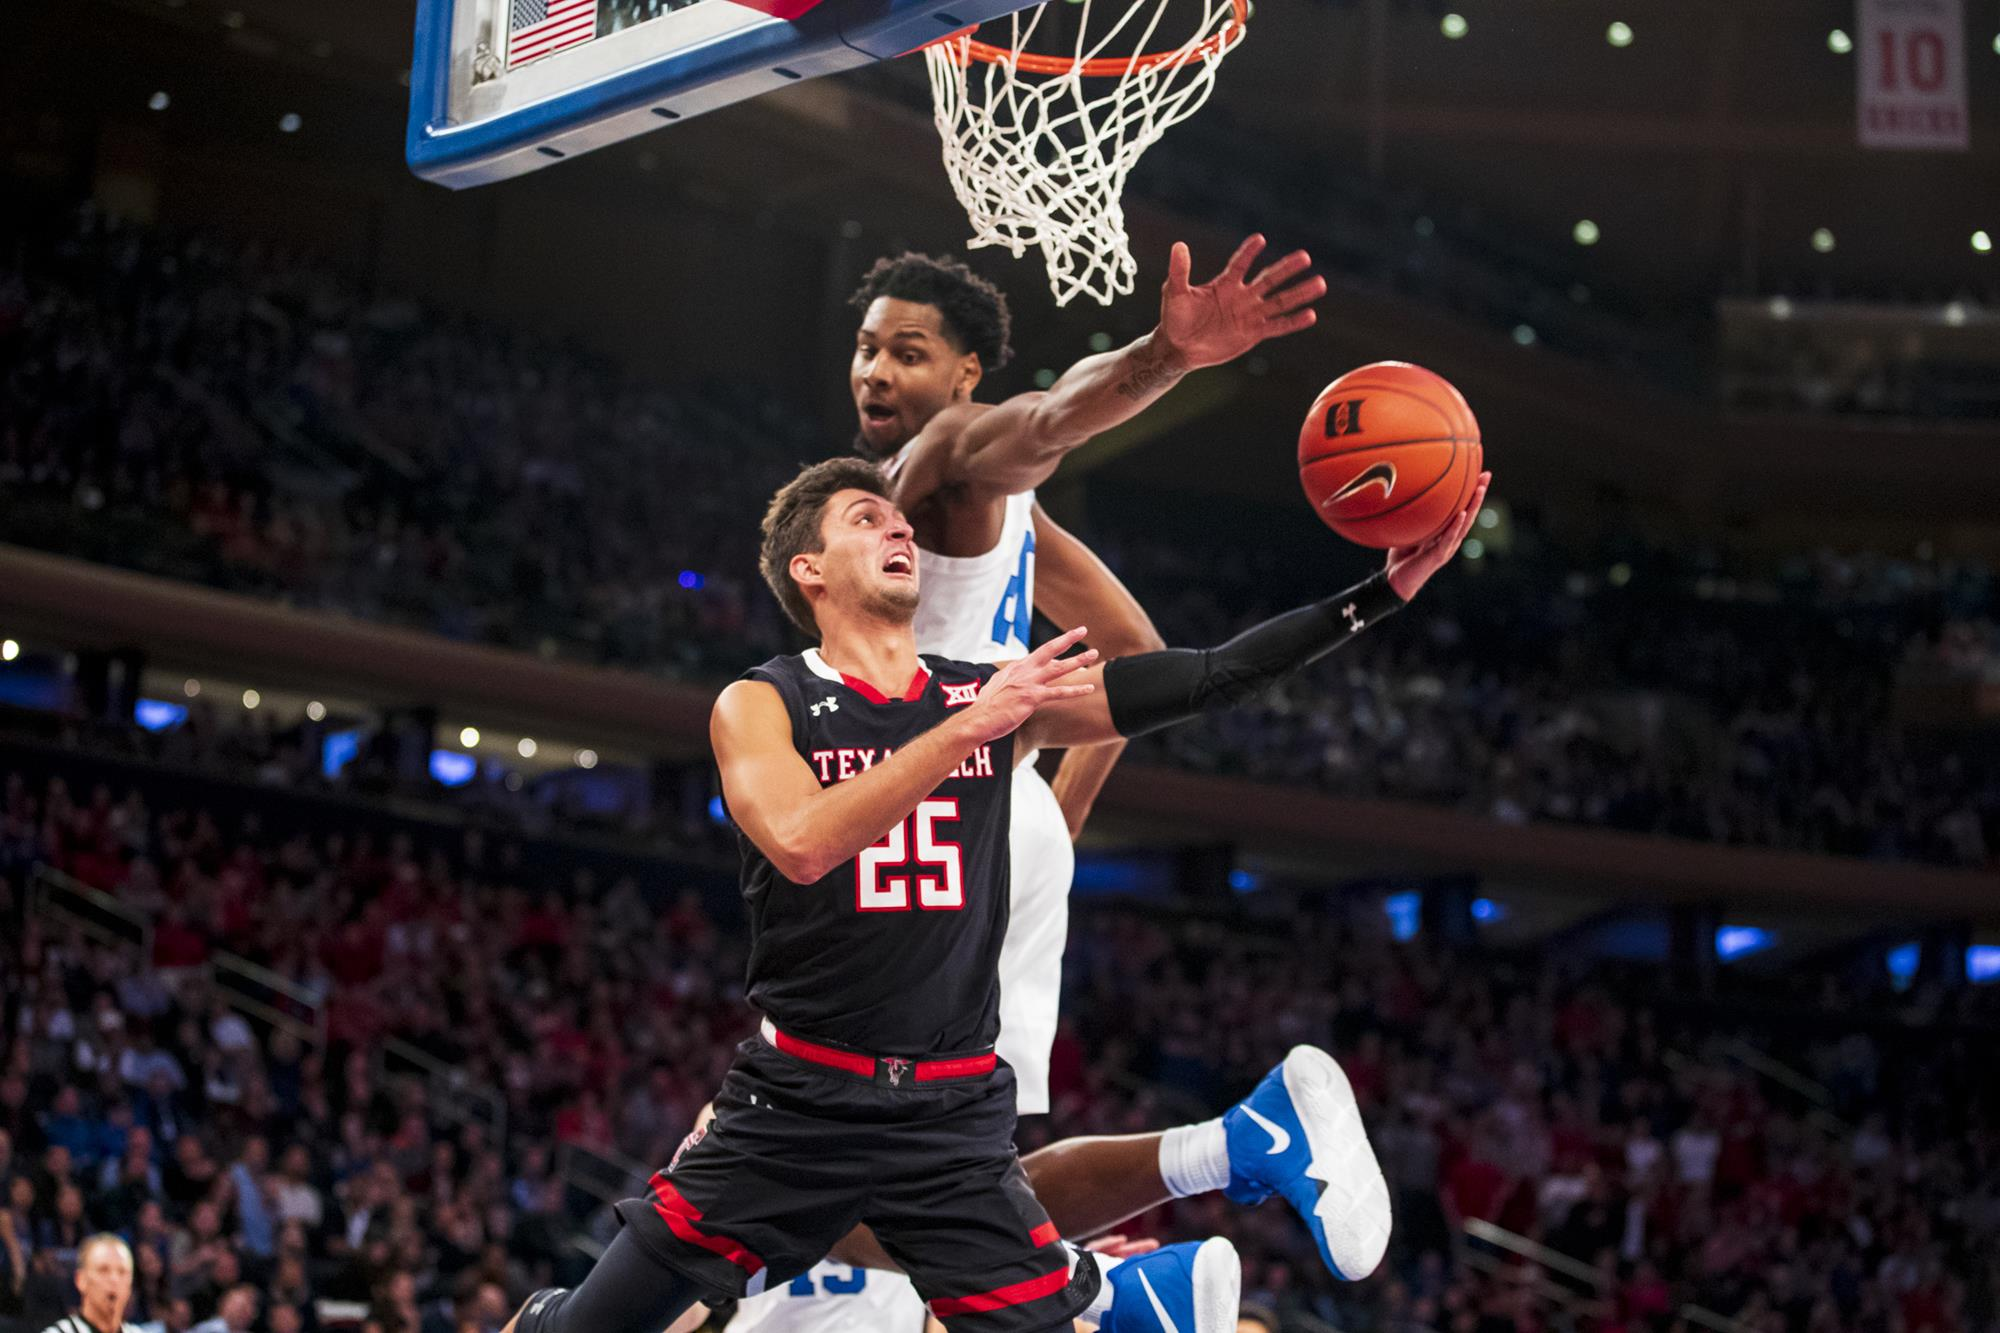 05 16 2019 / Men's Basketball Red Raiders to Play in Jimmy V Classic